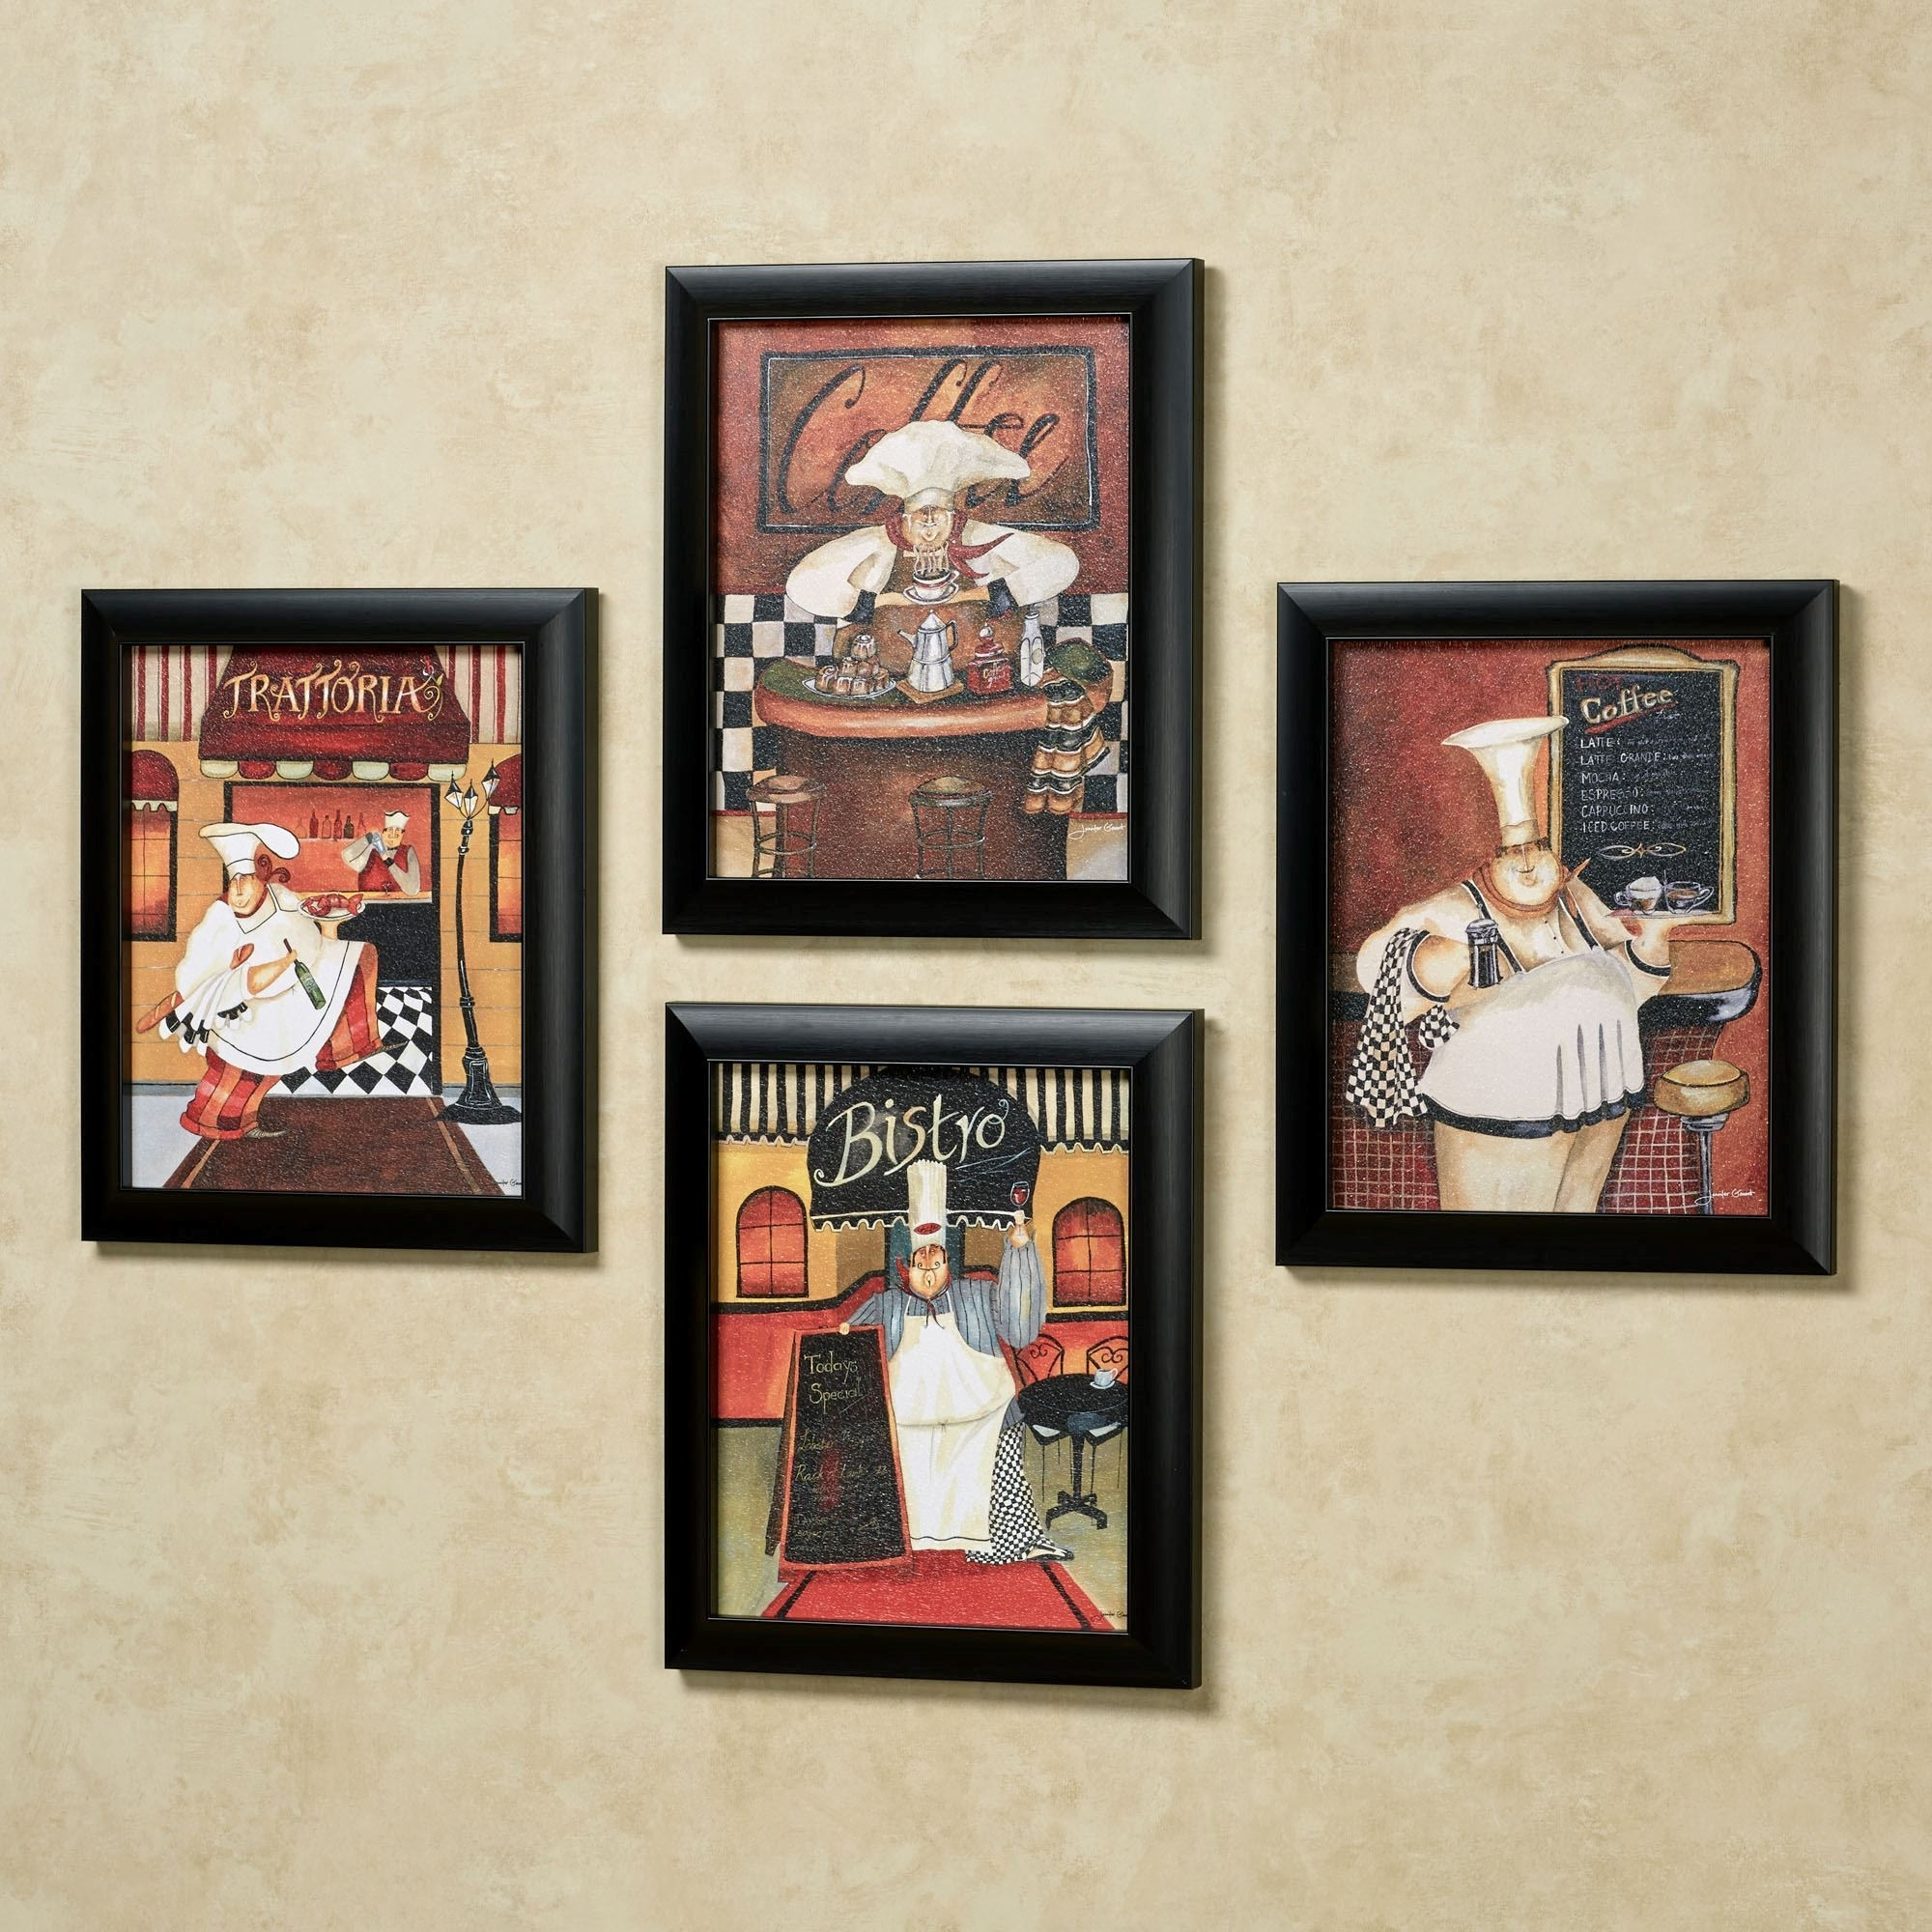 Sonoma Chef Framed Wall Art Set Within Most Up To Date Wall Art Sets (View 8 of 15)